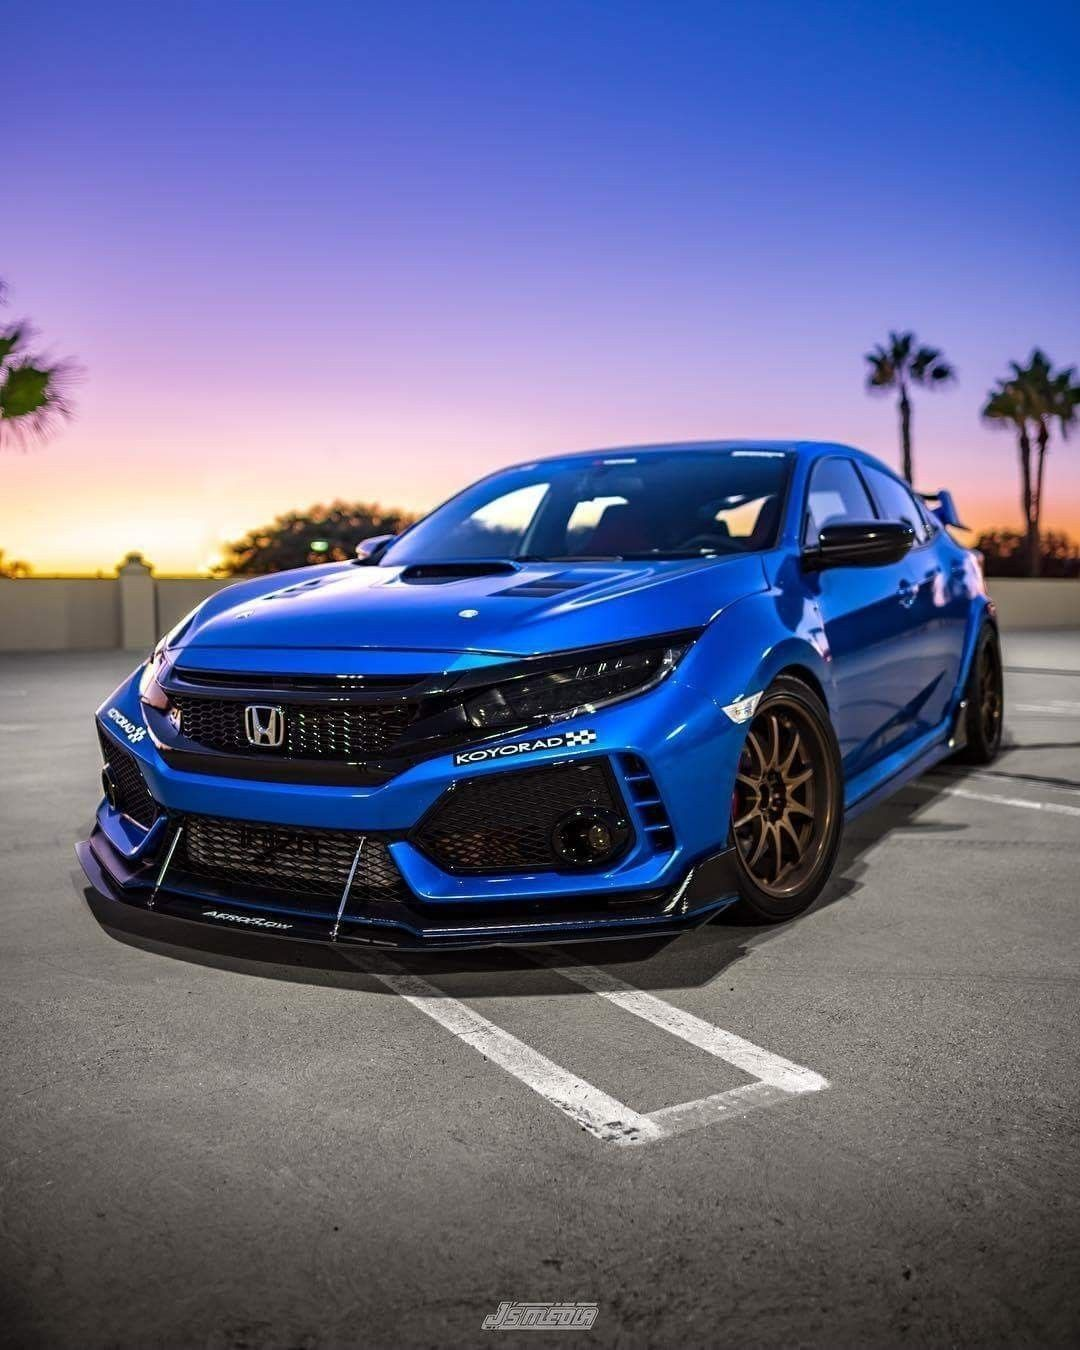 Pin by 49th St Photo on Cars cars cars in 2020 Honda